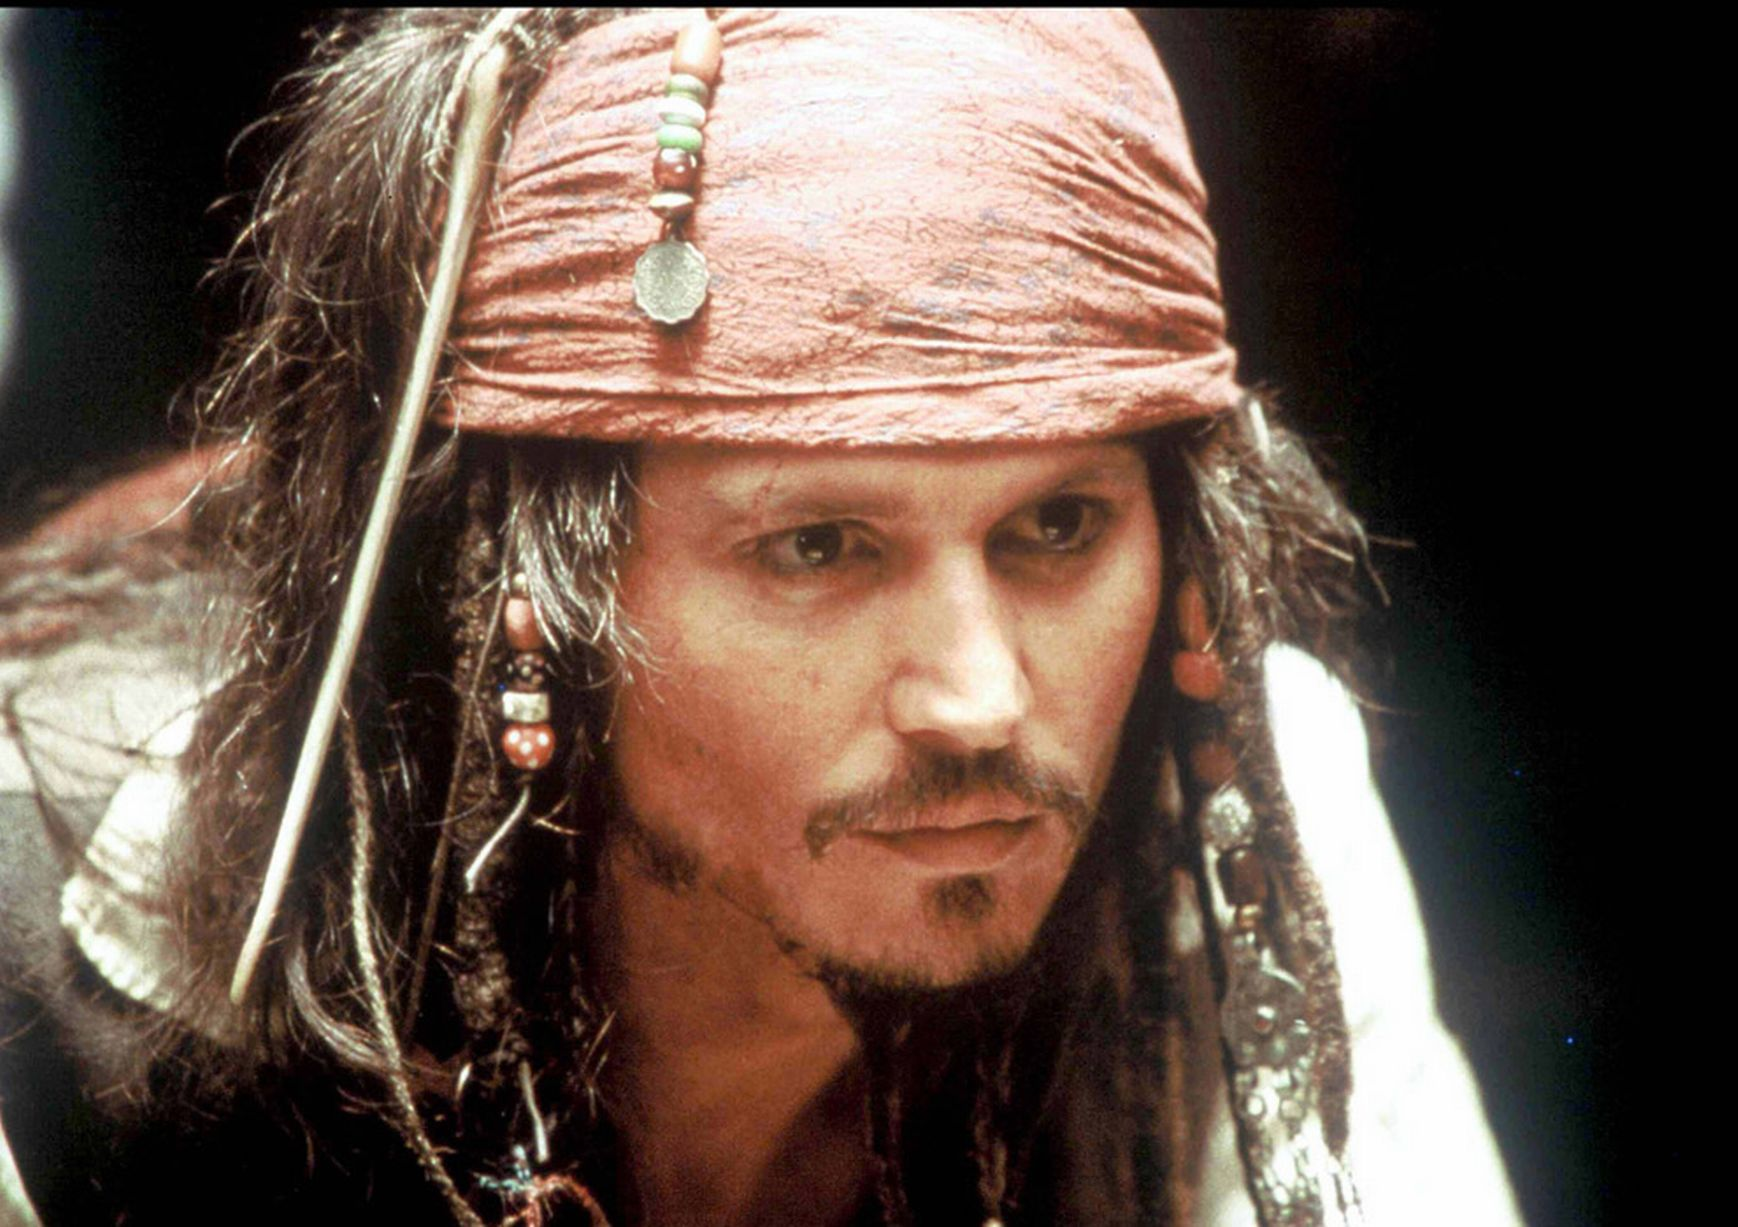 Johnny-Depp-as-Jack-Sparrow